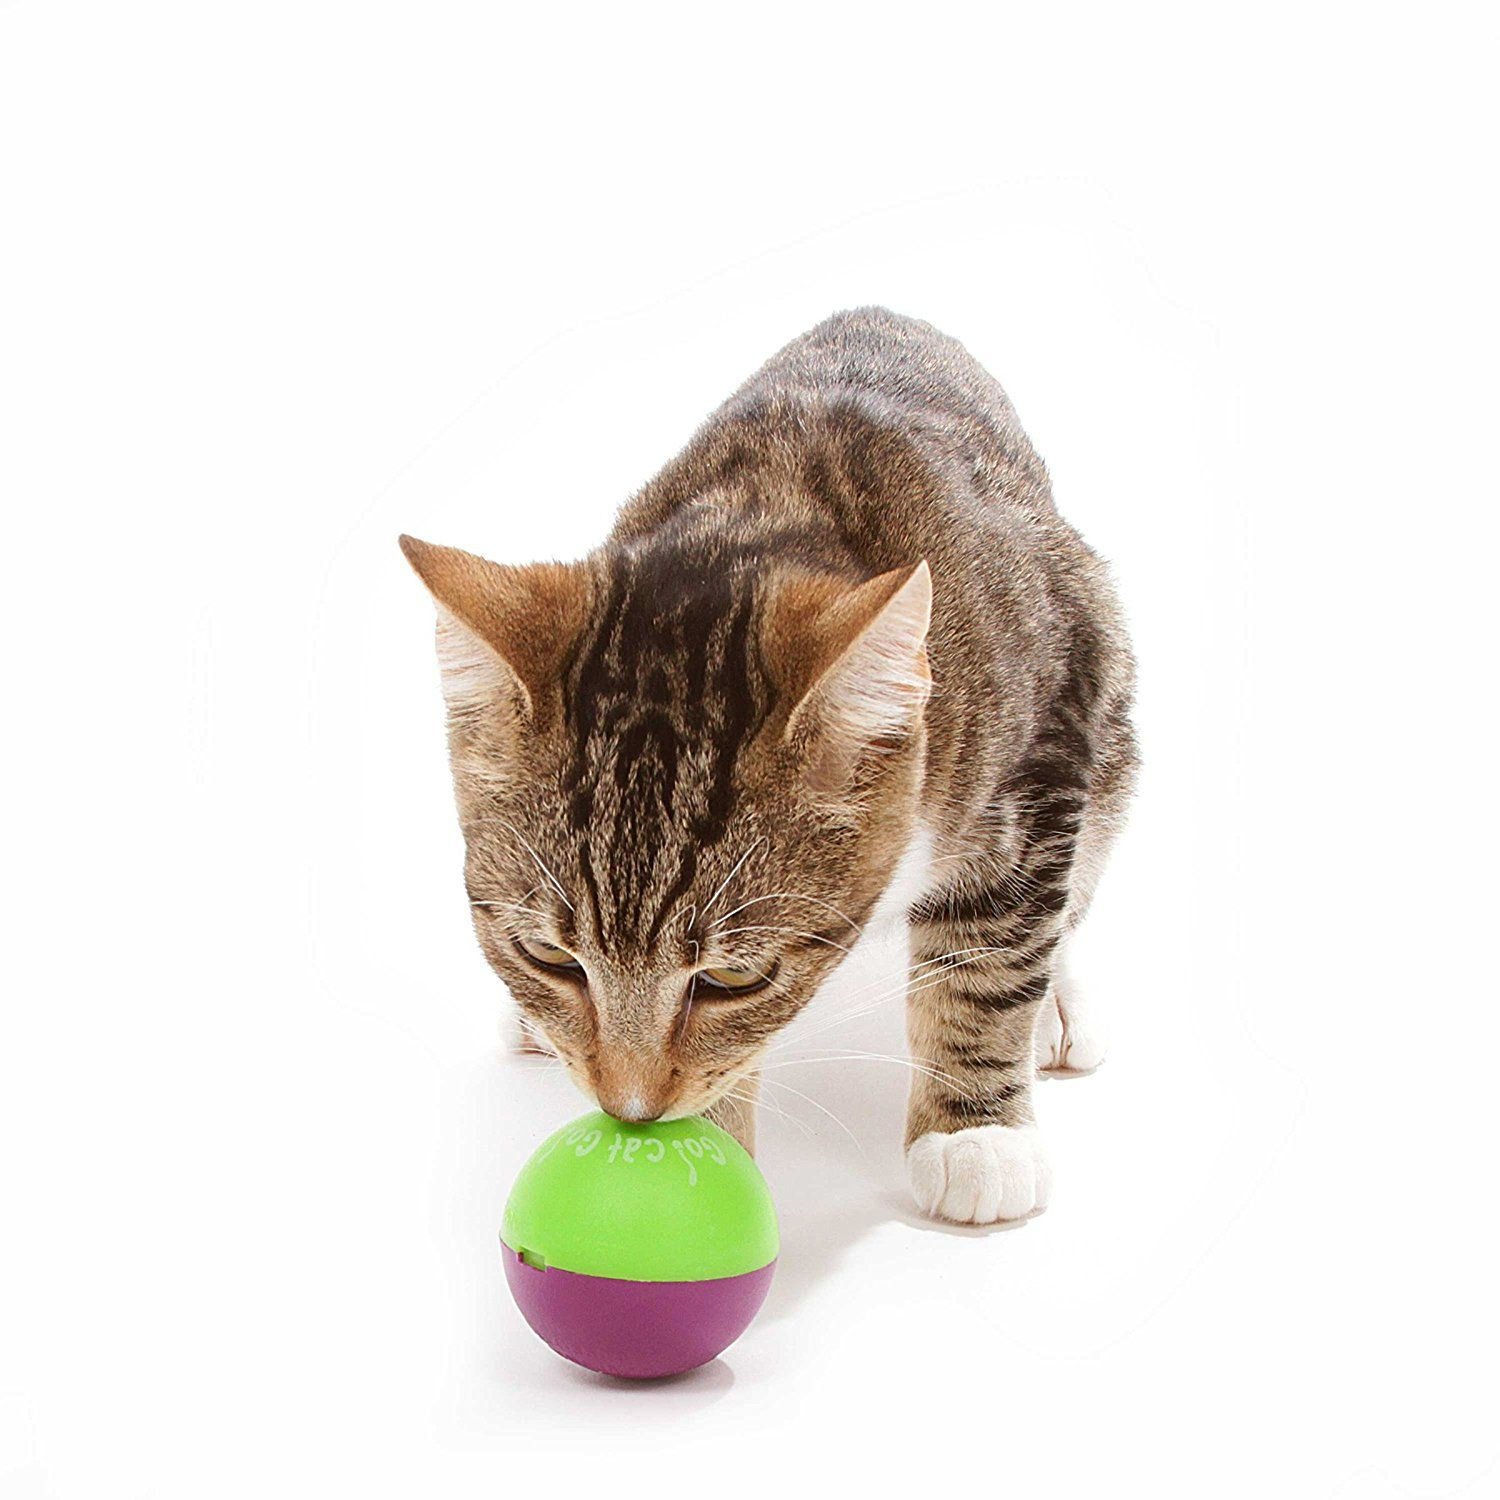 Gocat Go Play N Treat Ball Dispenser Review In 2020 Cat Toys Interactive Cat Toys Pet Toys